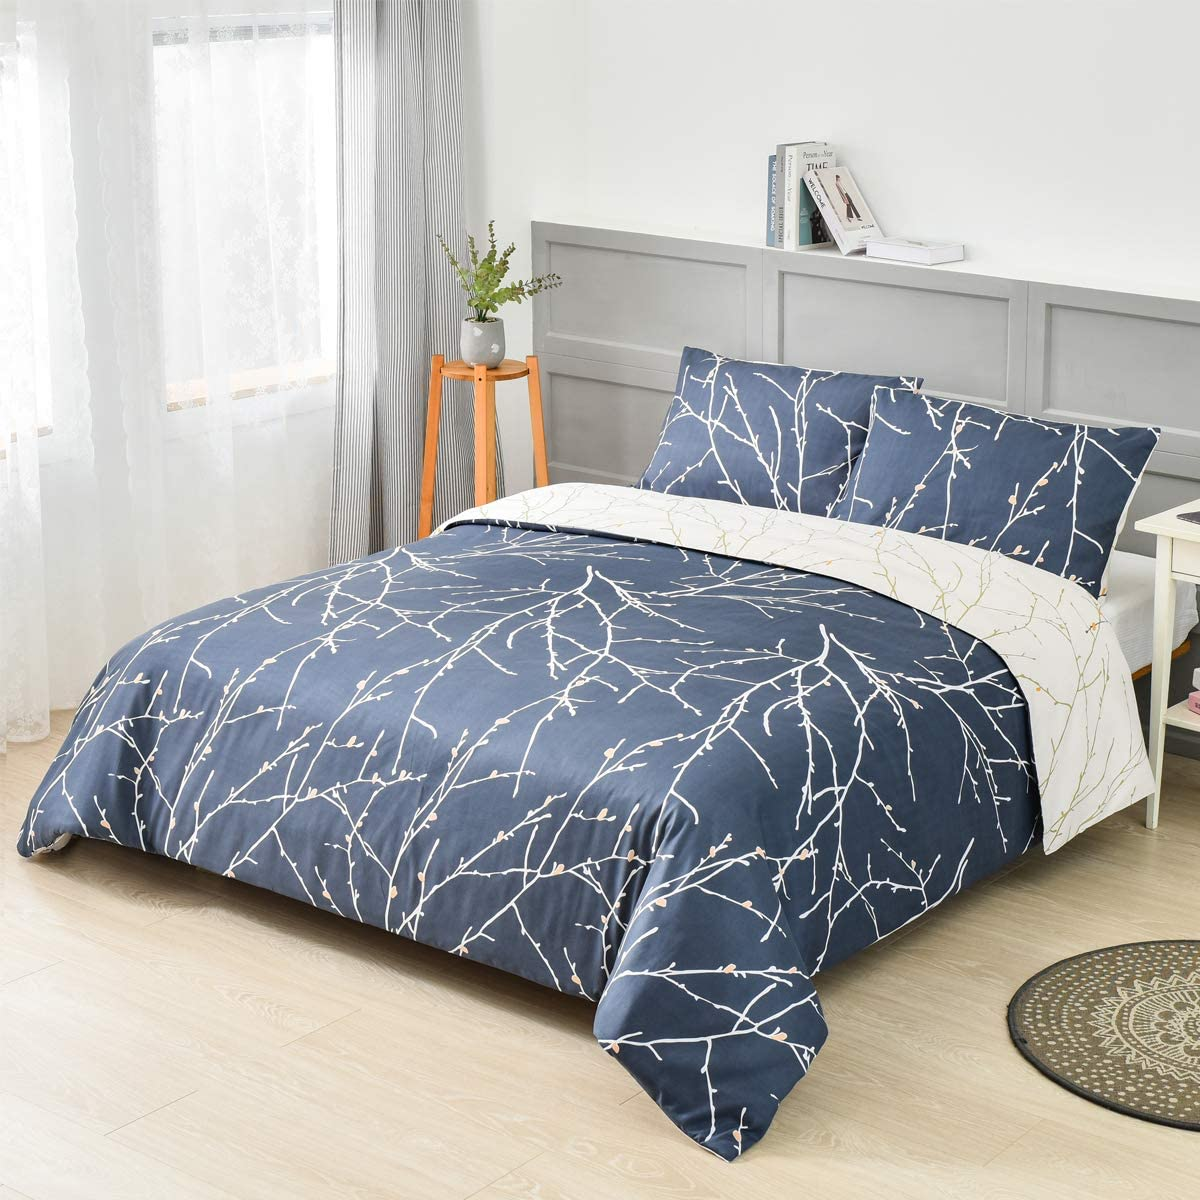 1 Fitted Sheet Shrinkage and Fade Resistant Soft Brushed Microfiber Fabric 3 Piece Bedding and 2 Pillowcases xuan dian Printed Bed Sheet Set